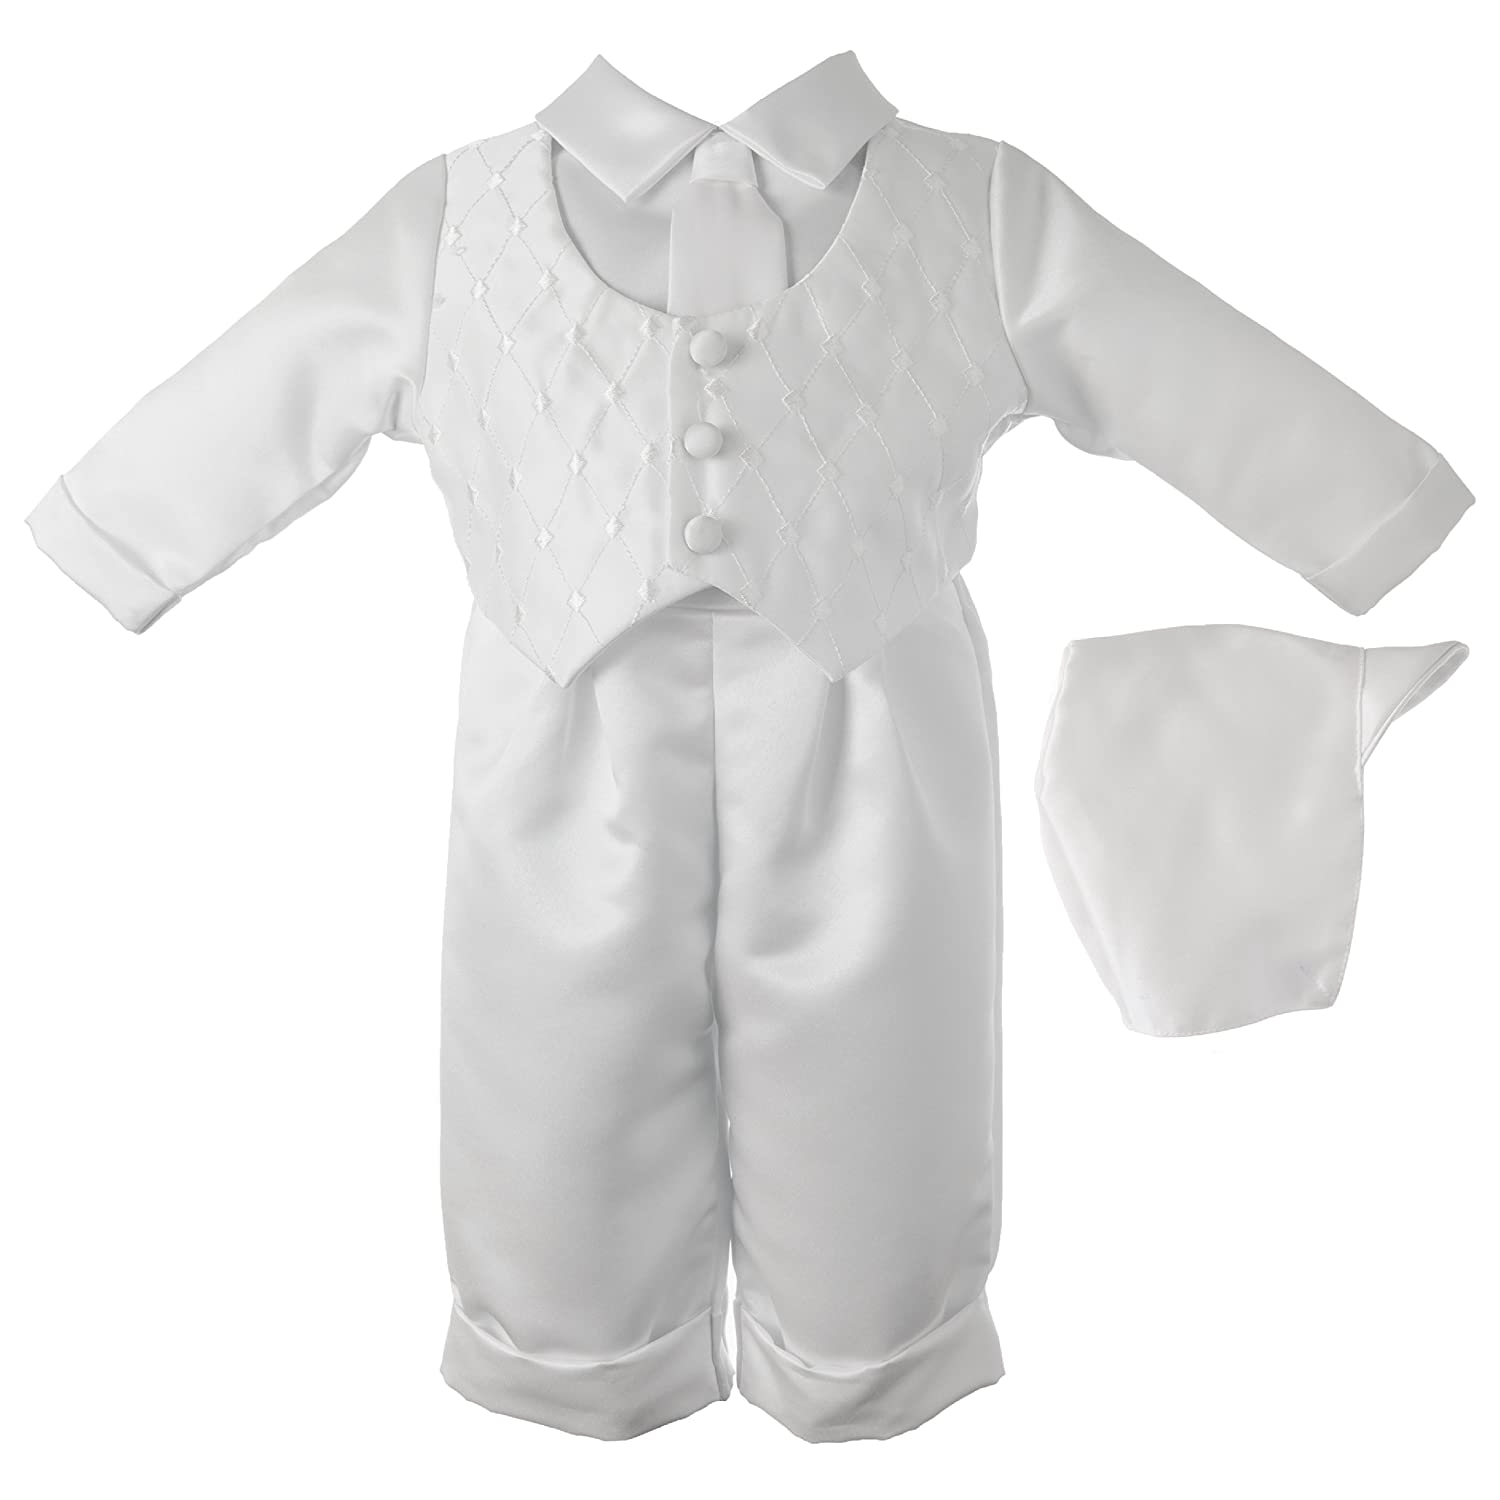 Lauren Madison Baby-Boys Newborn Christening Baptism Satin Long Pant Outfit Set 1451